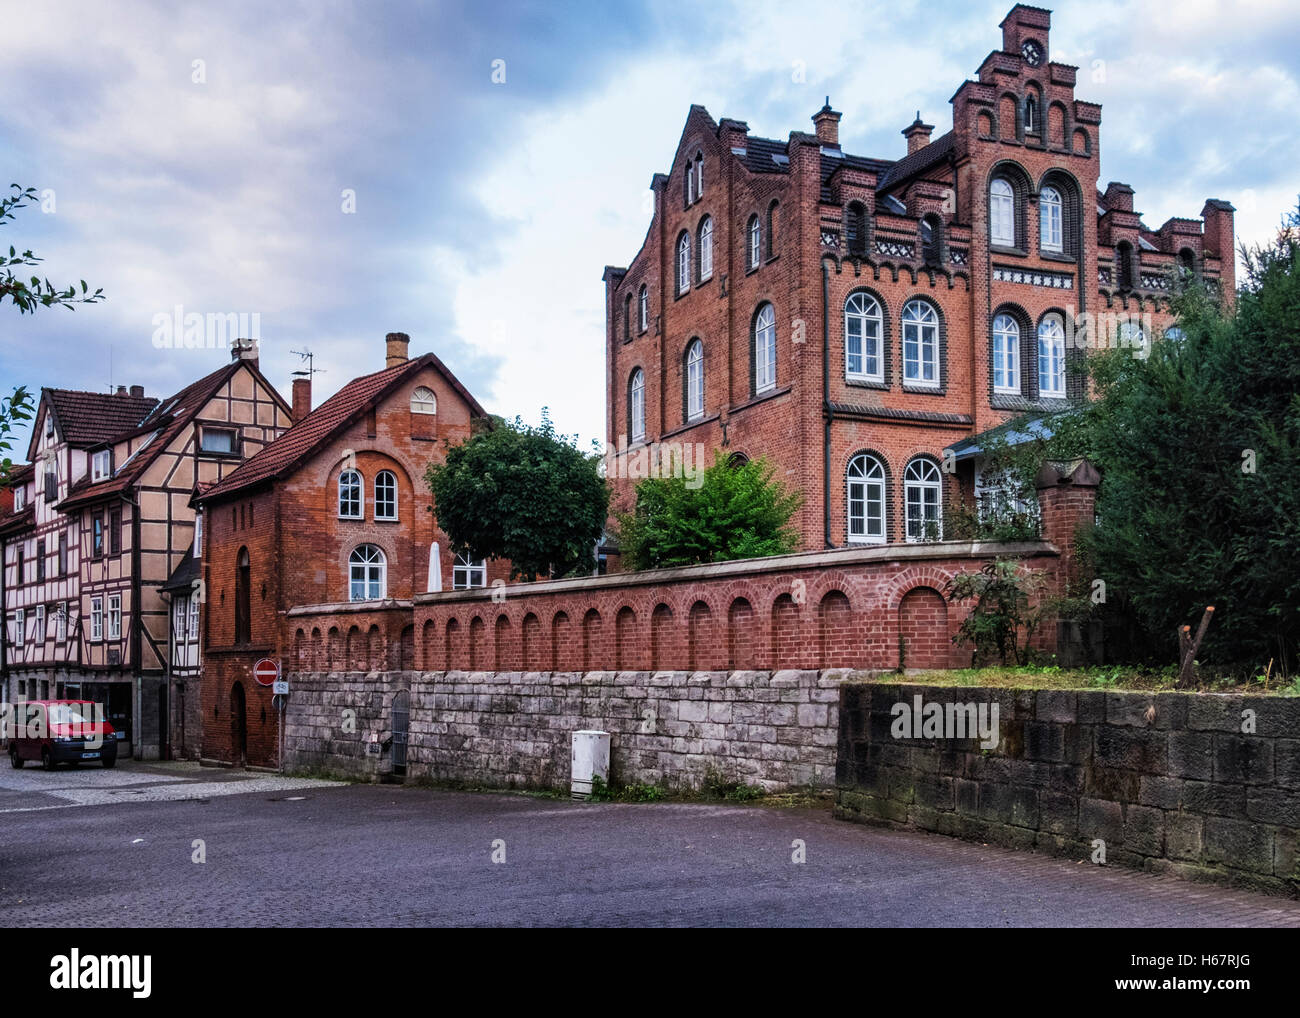 Brick homes stock photos brick homes stock images alamy for Saxony homes